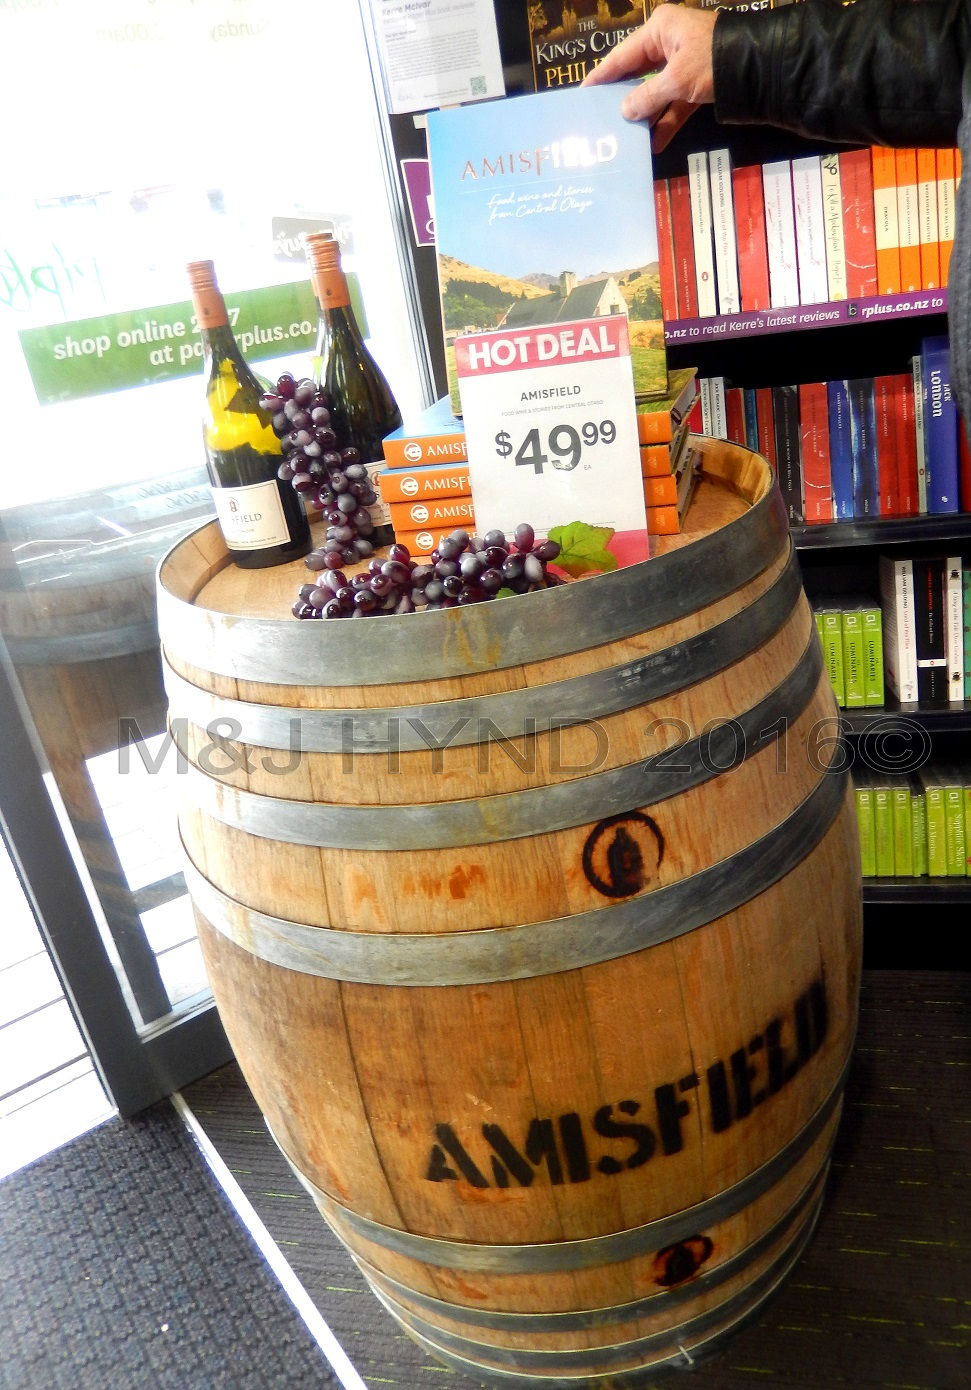 Amisfield Winery cook book, Lake Hayes, Central Otago, NZ